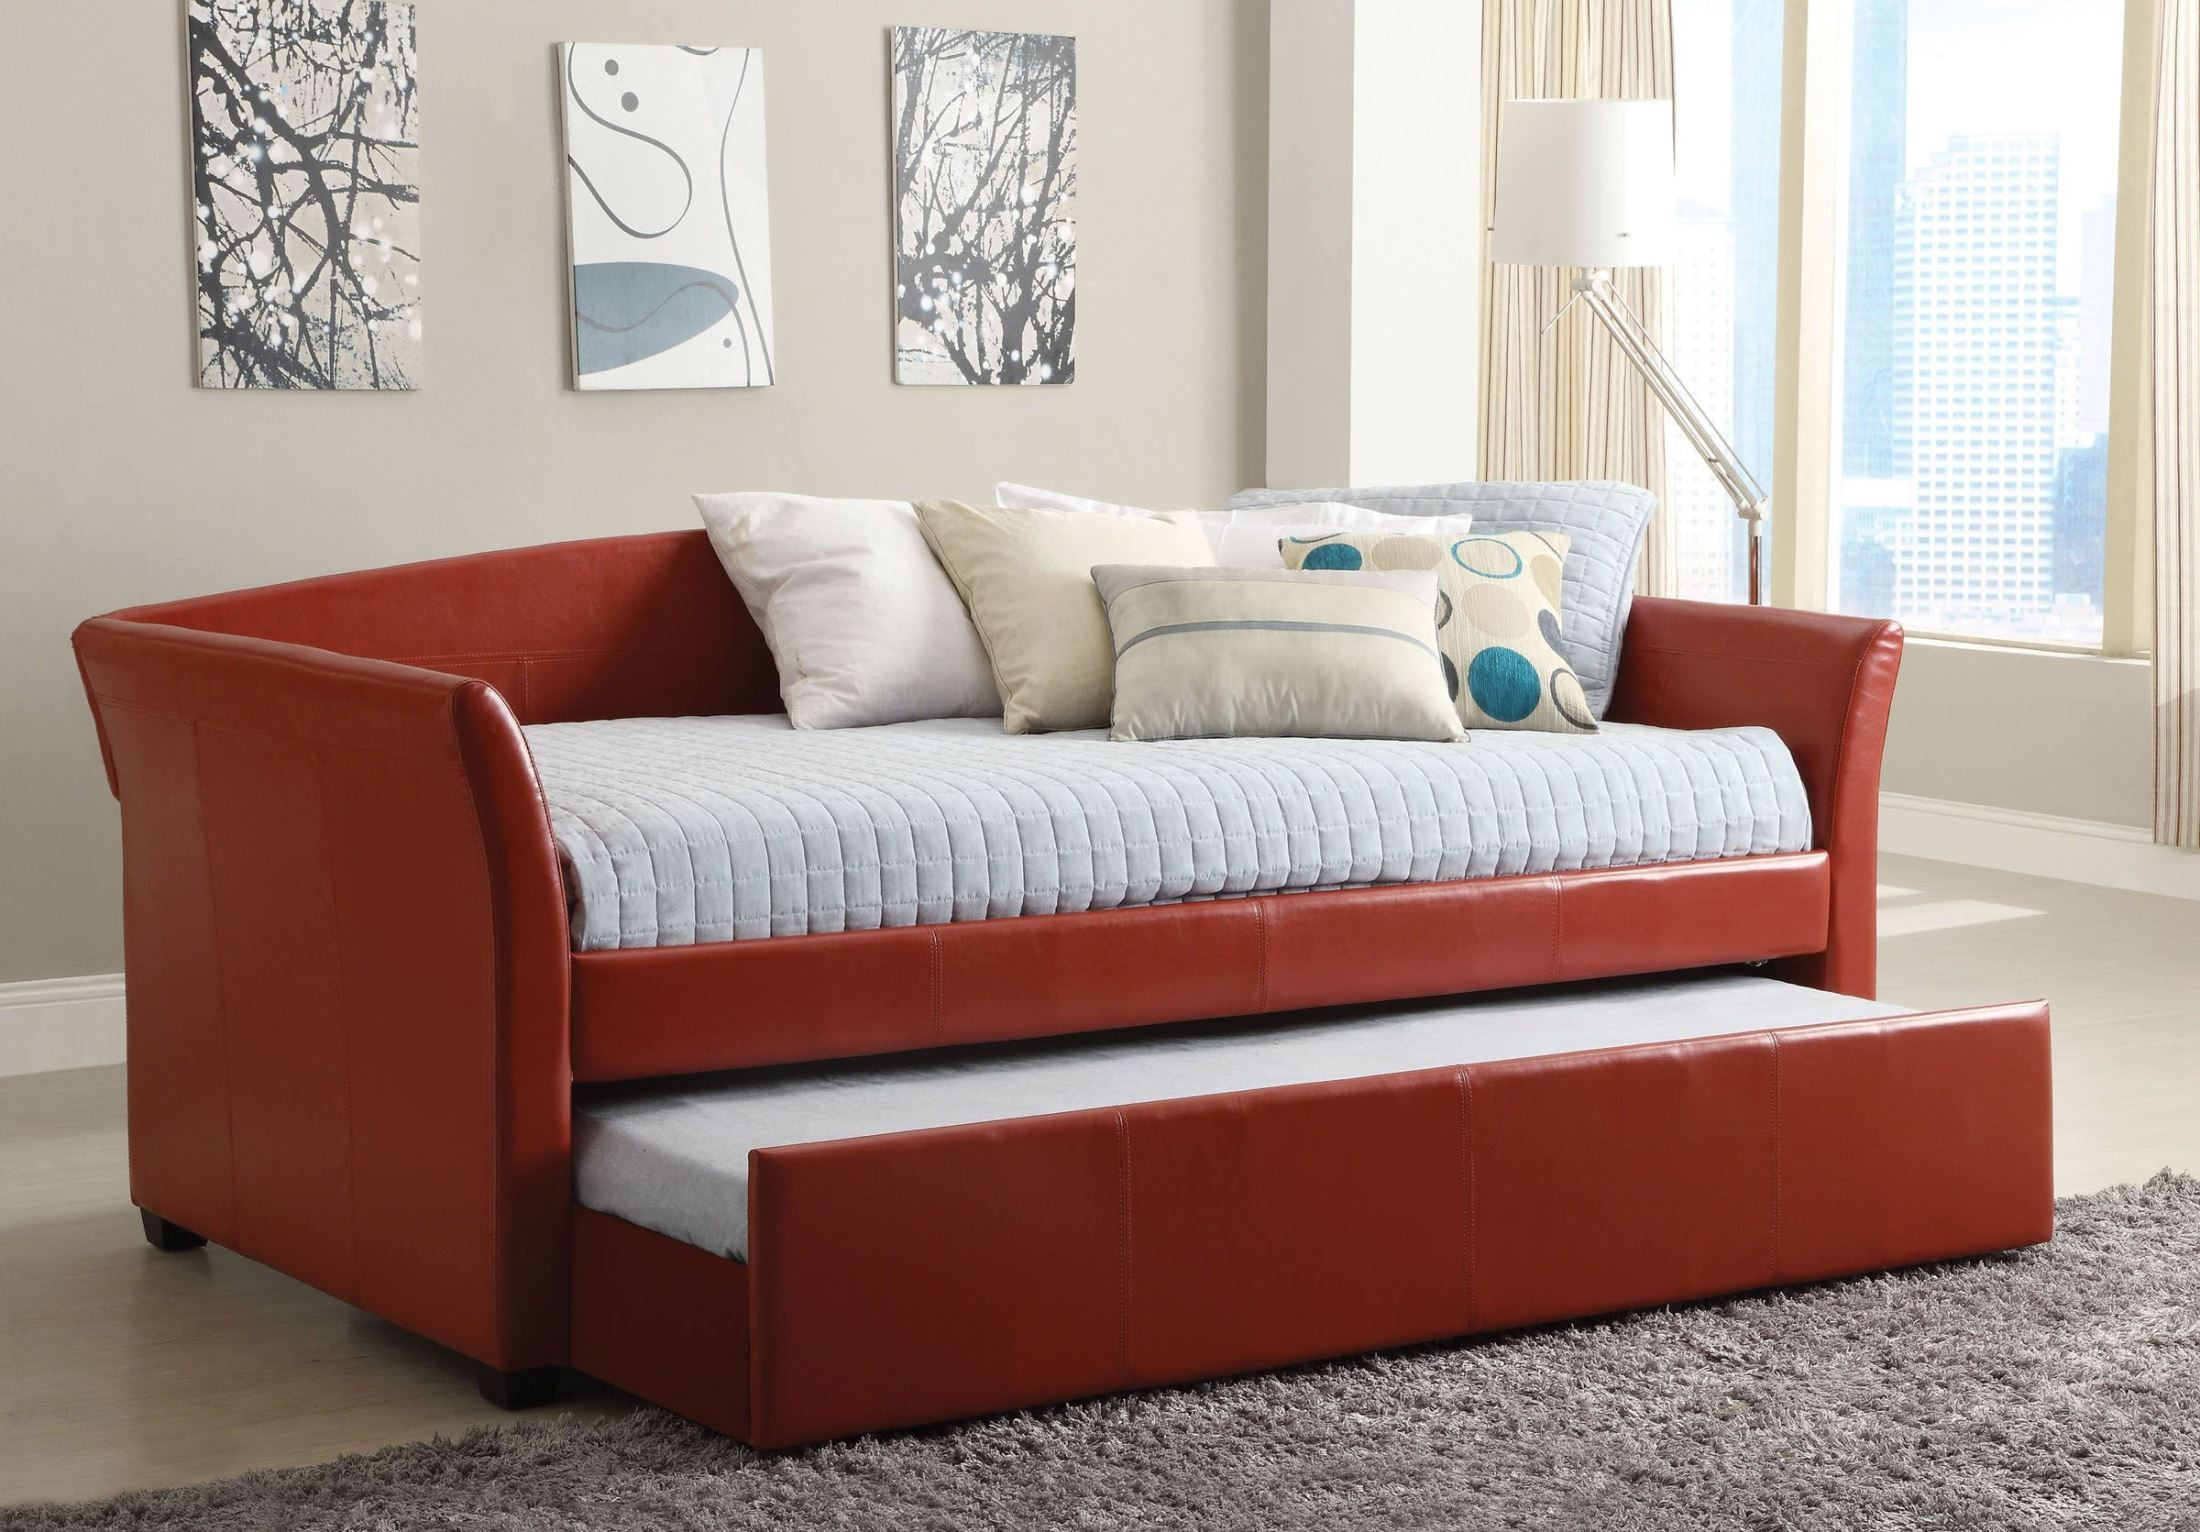 Delmar Red Trundle Daybed From Furniture Of America Cm1956rd Bed Coleman Furniture